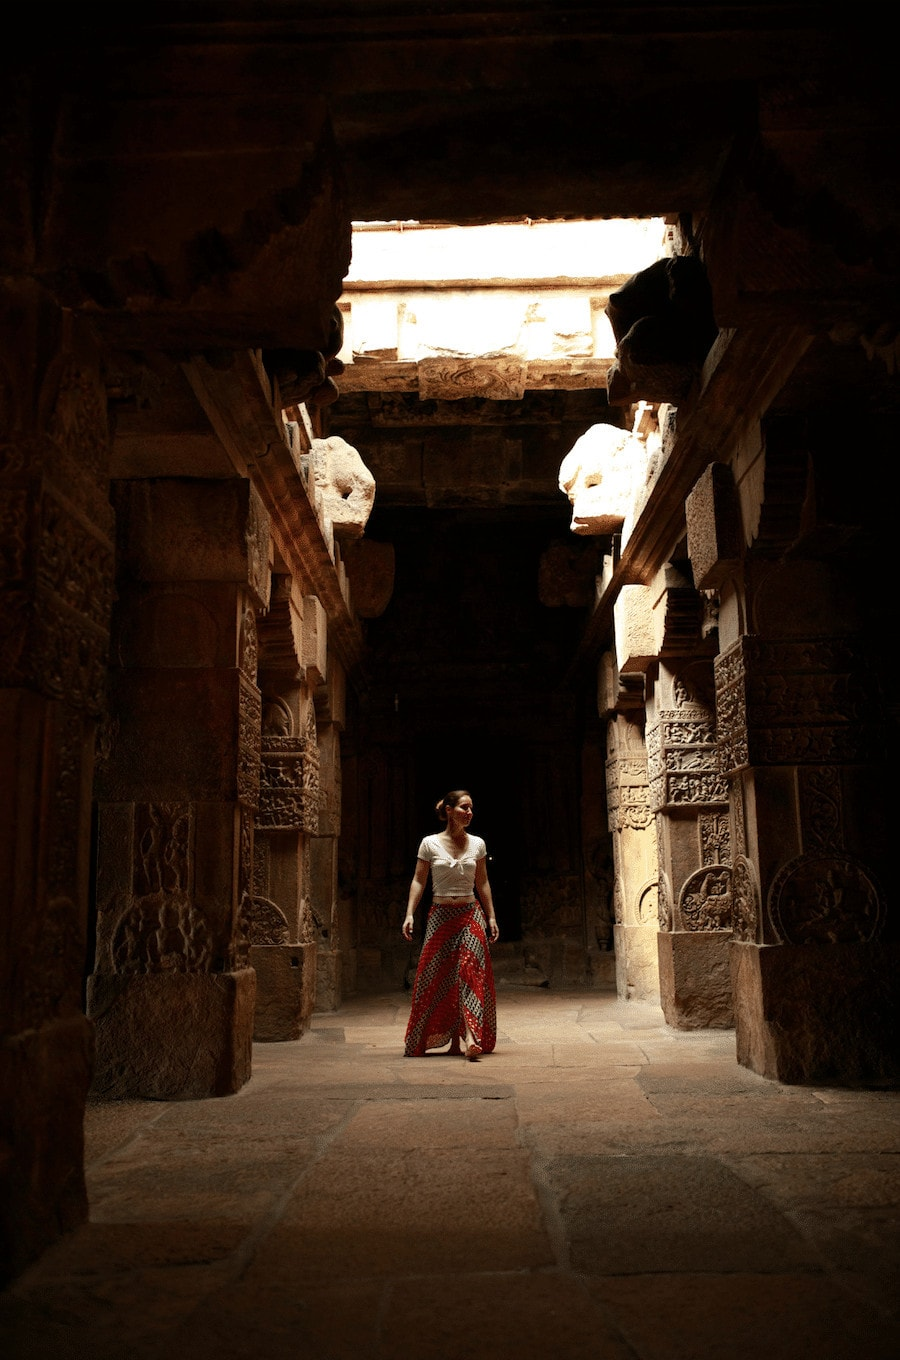 Virupaksha temple in Pattadakal. Photo by Jinson Abraham (@JinsonAbraham) for the Ministry of Tourism and Government of India